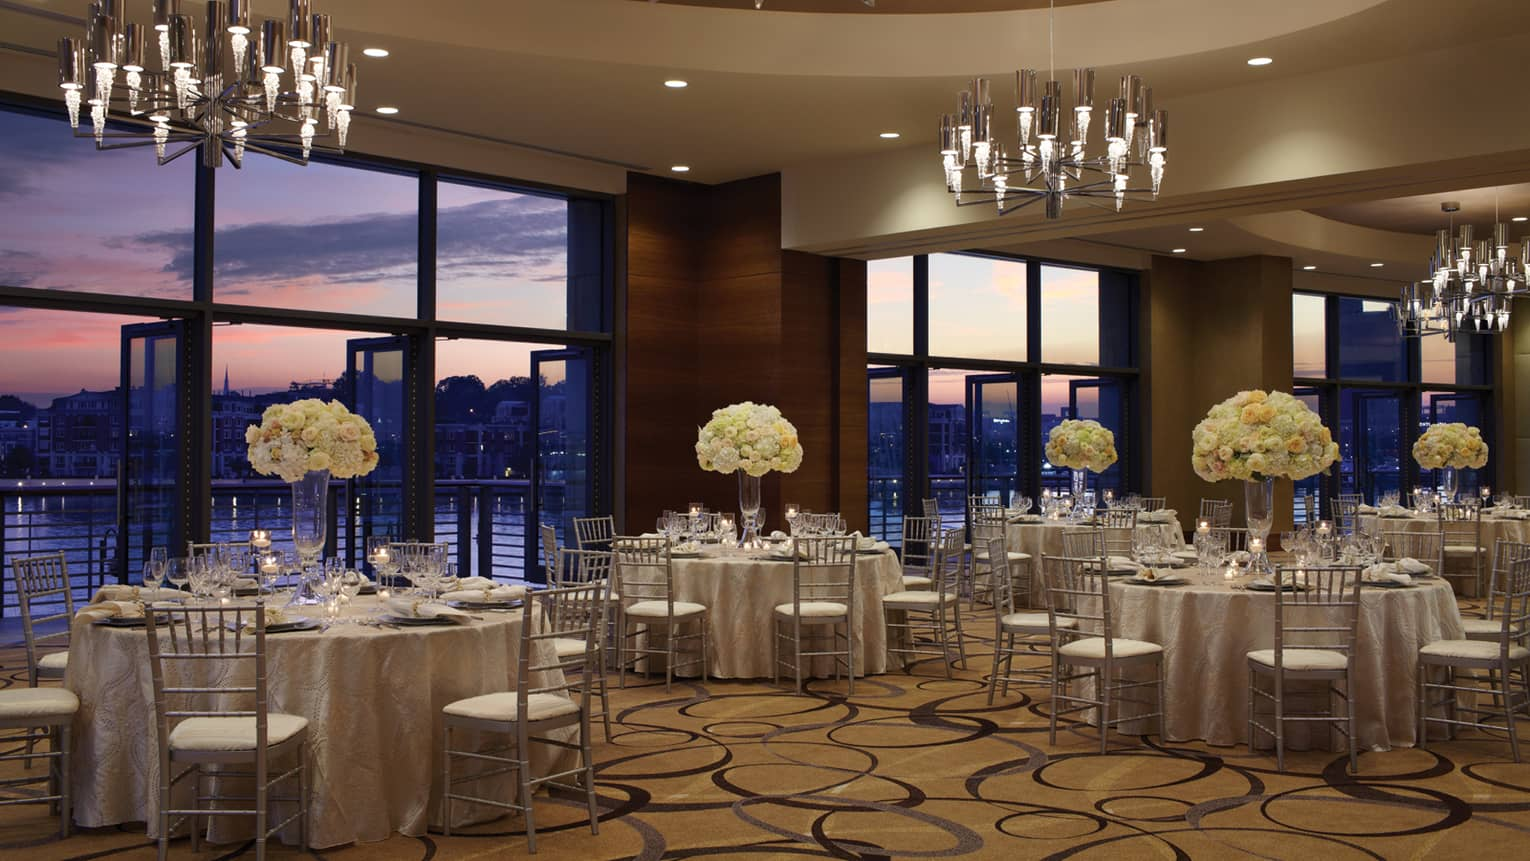 Ballroom banquet dining tables under chandeliers and large windows with sunset Harbor views